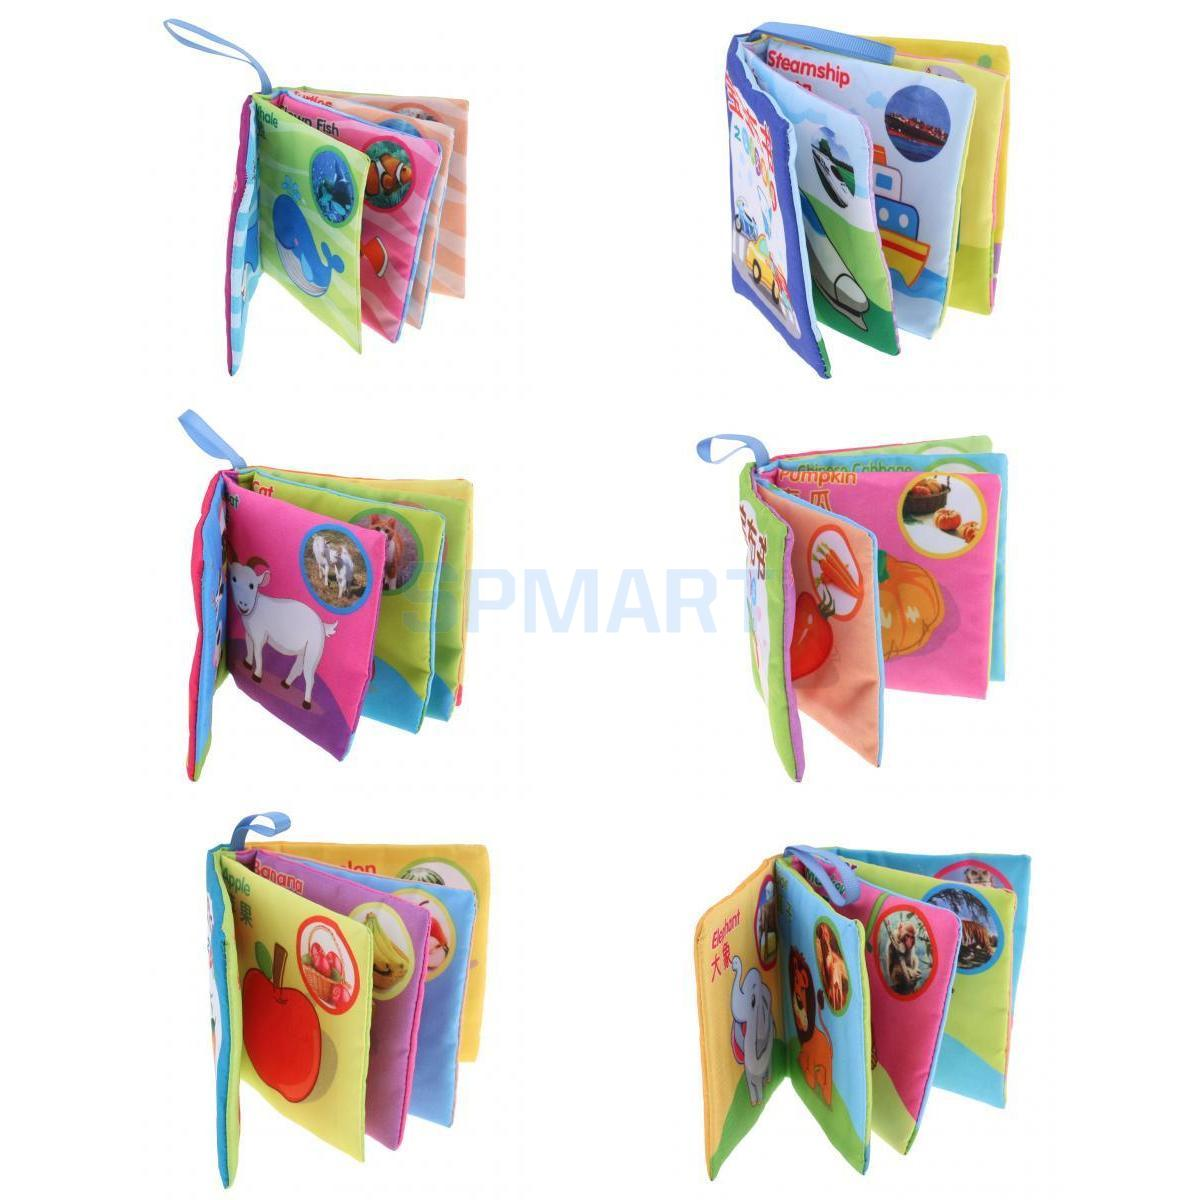 6 Set Soft Cloth Books Toddler Shapes Colors English Chinese Educational Toy